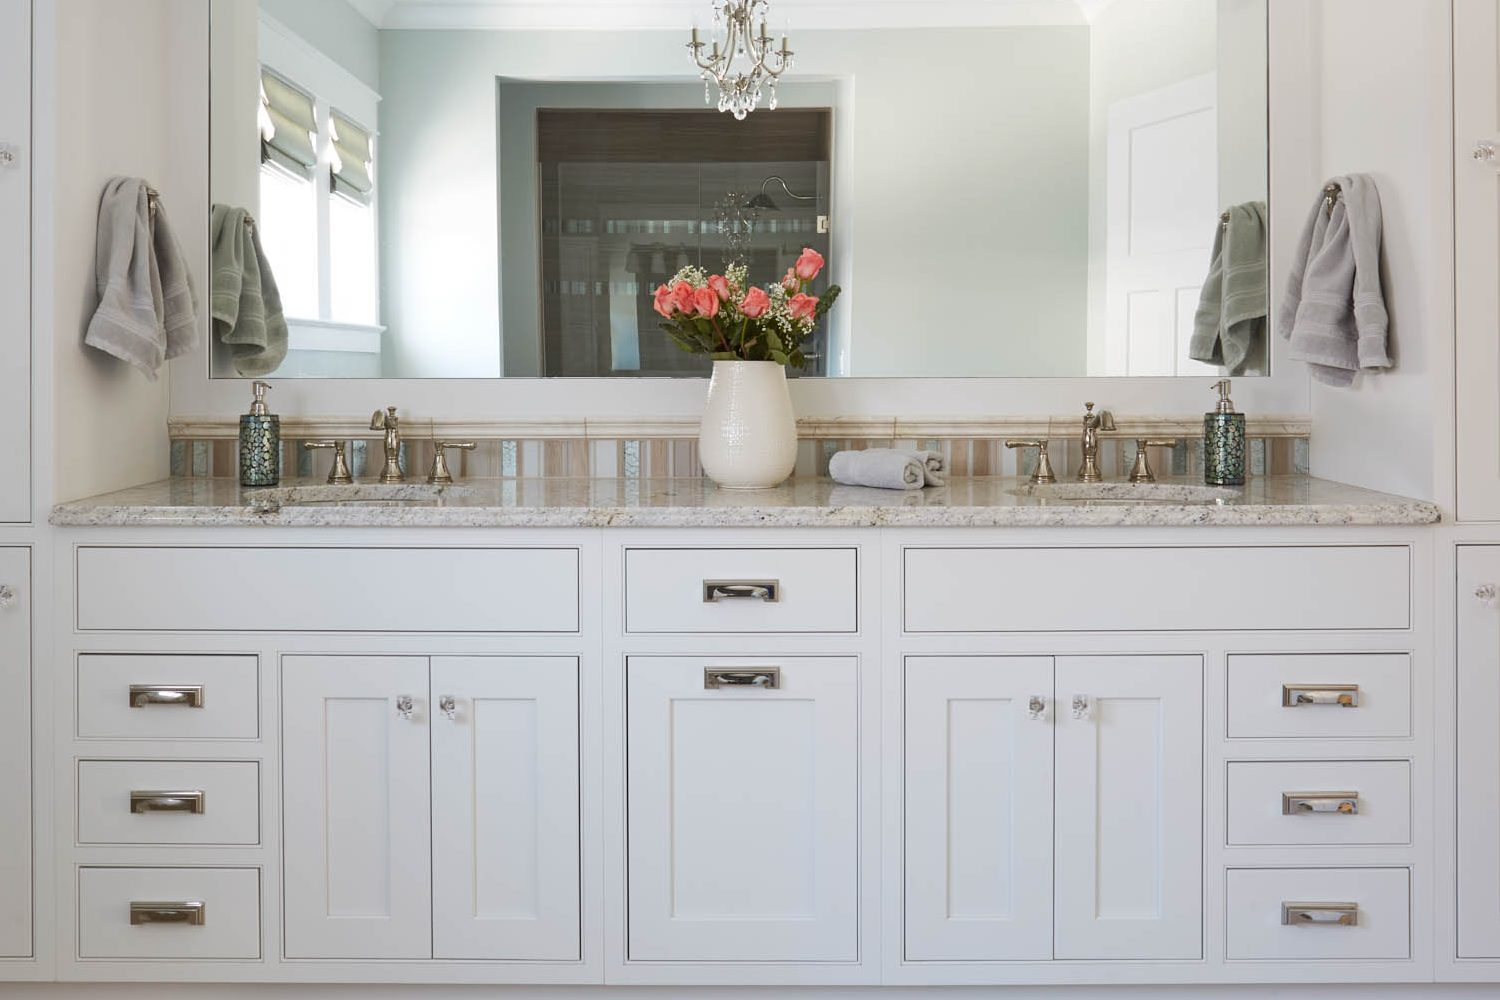 Painted master bathroom cabinets in Extra White